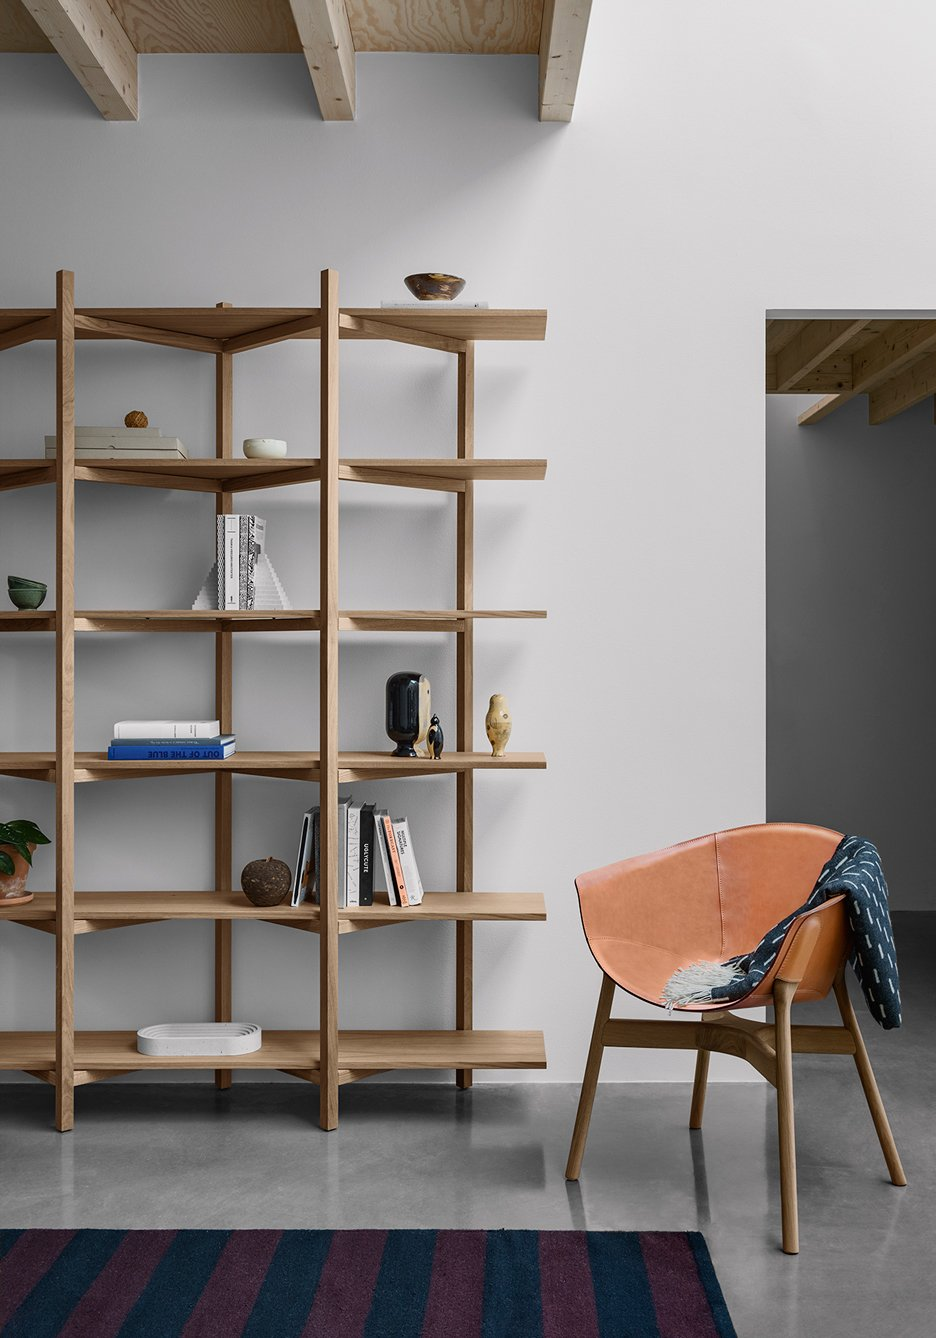 Zig Zag Shelf by Studio deFORM for Hem